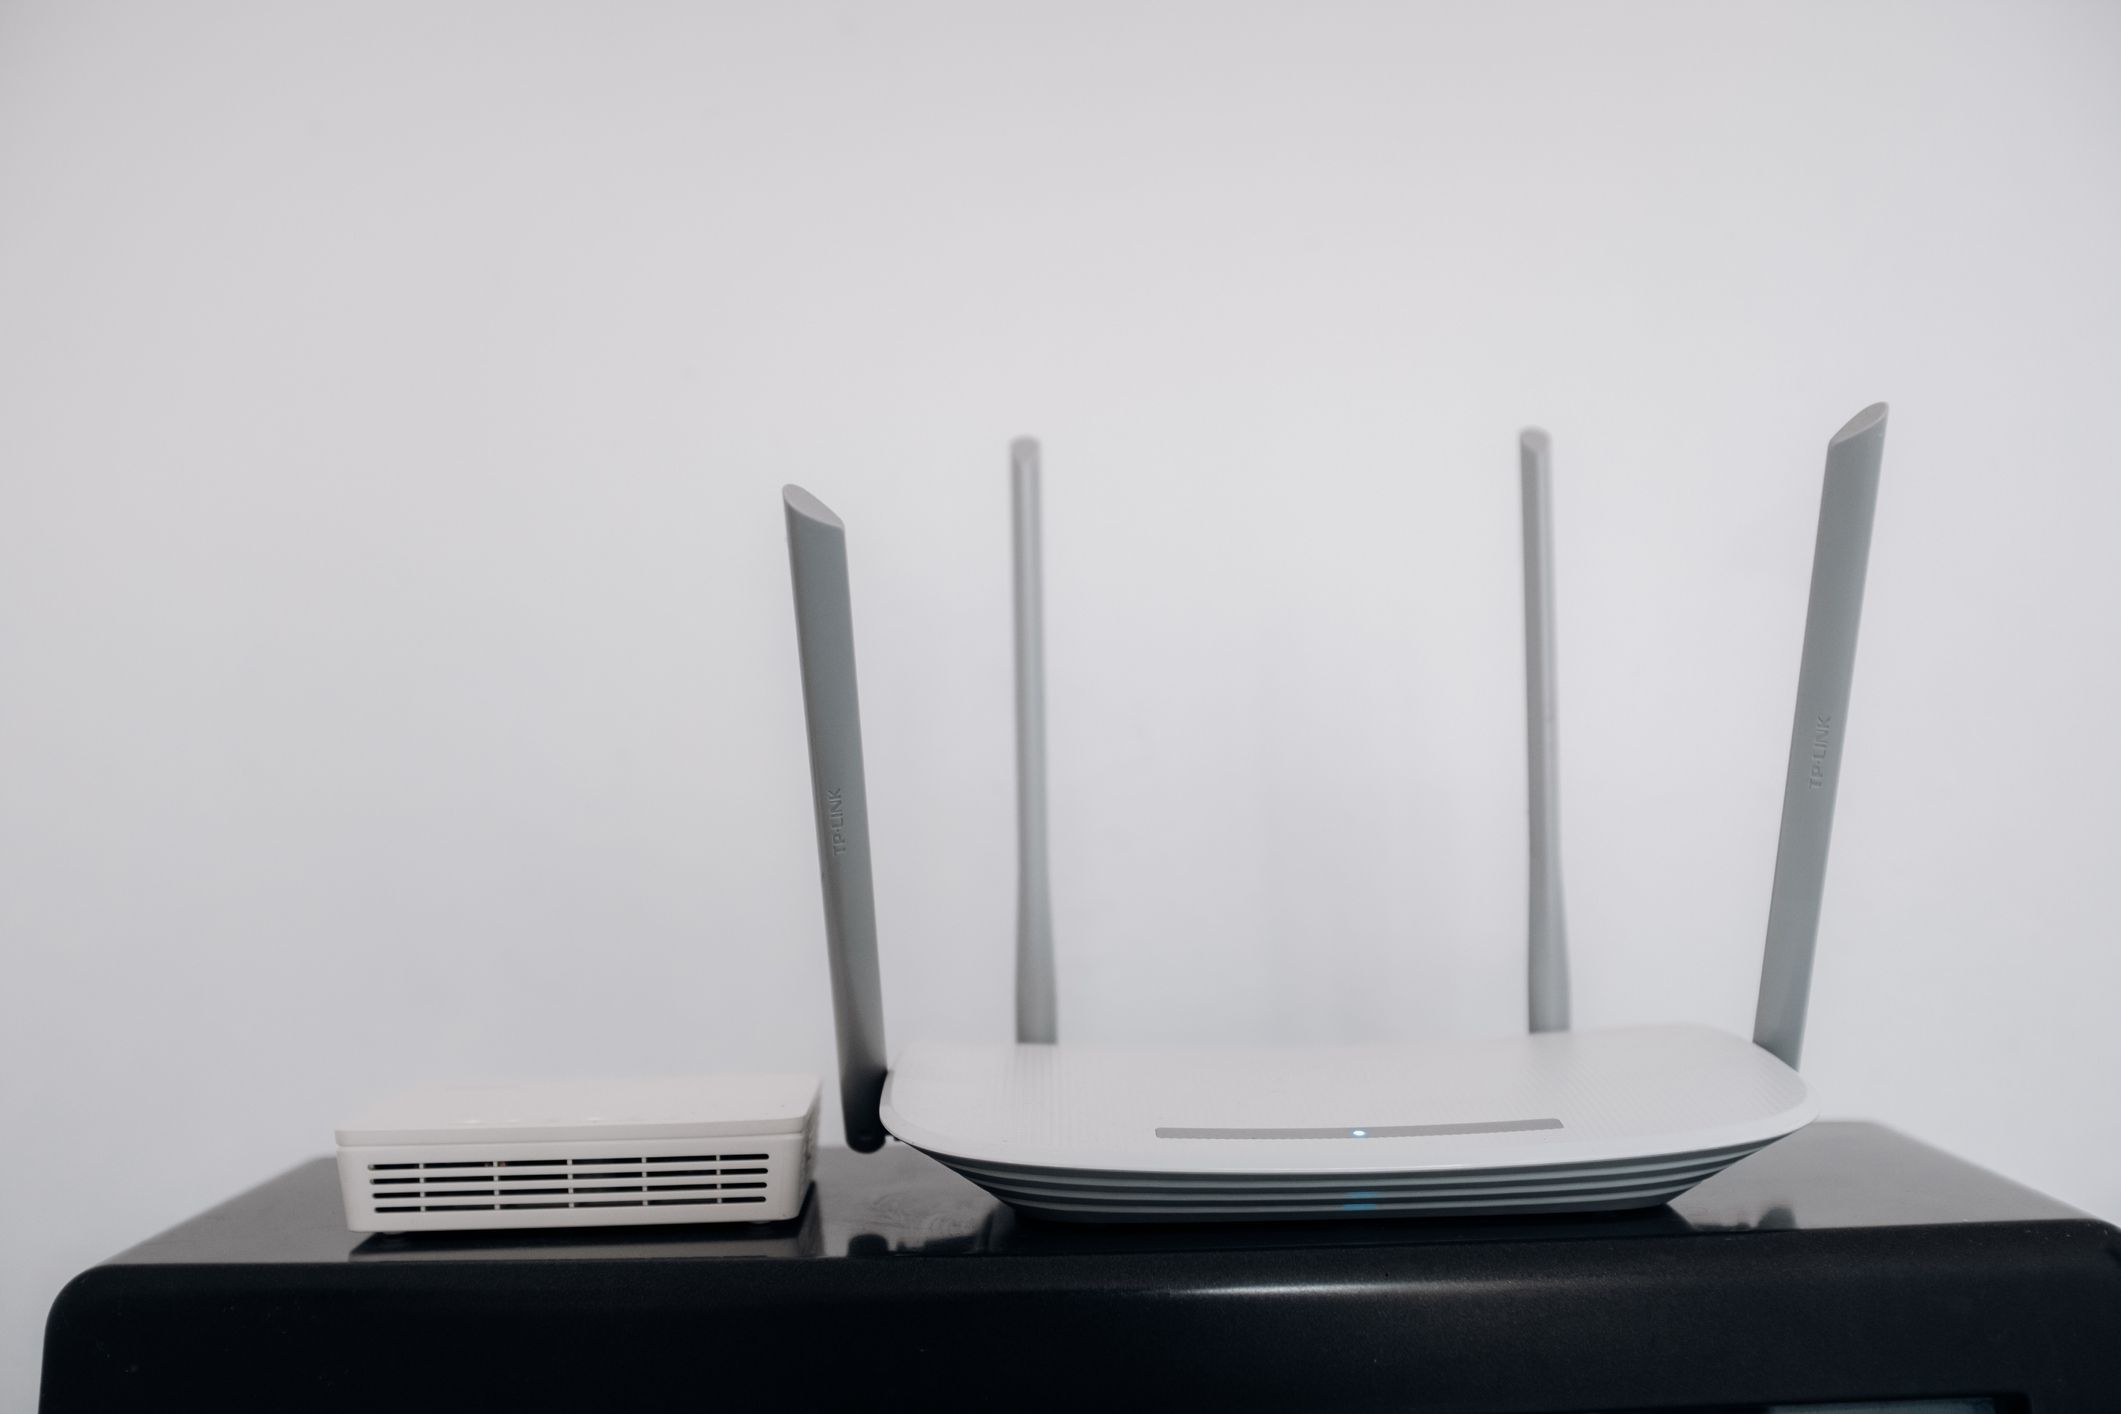 How to Get Internet Without Cable or Phone